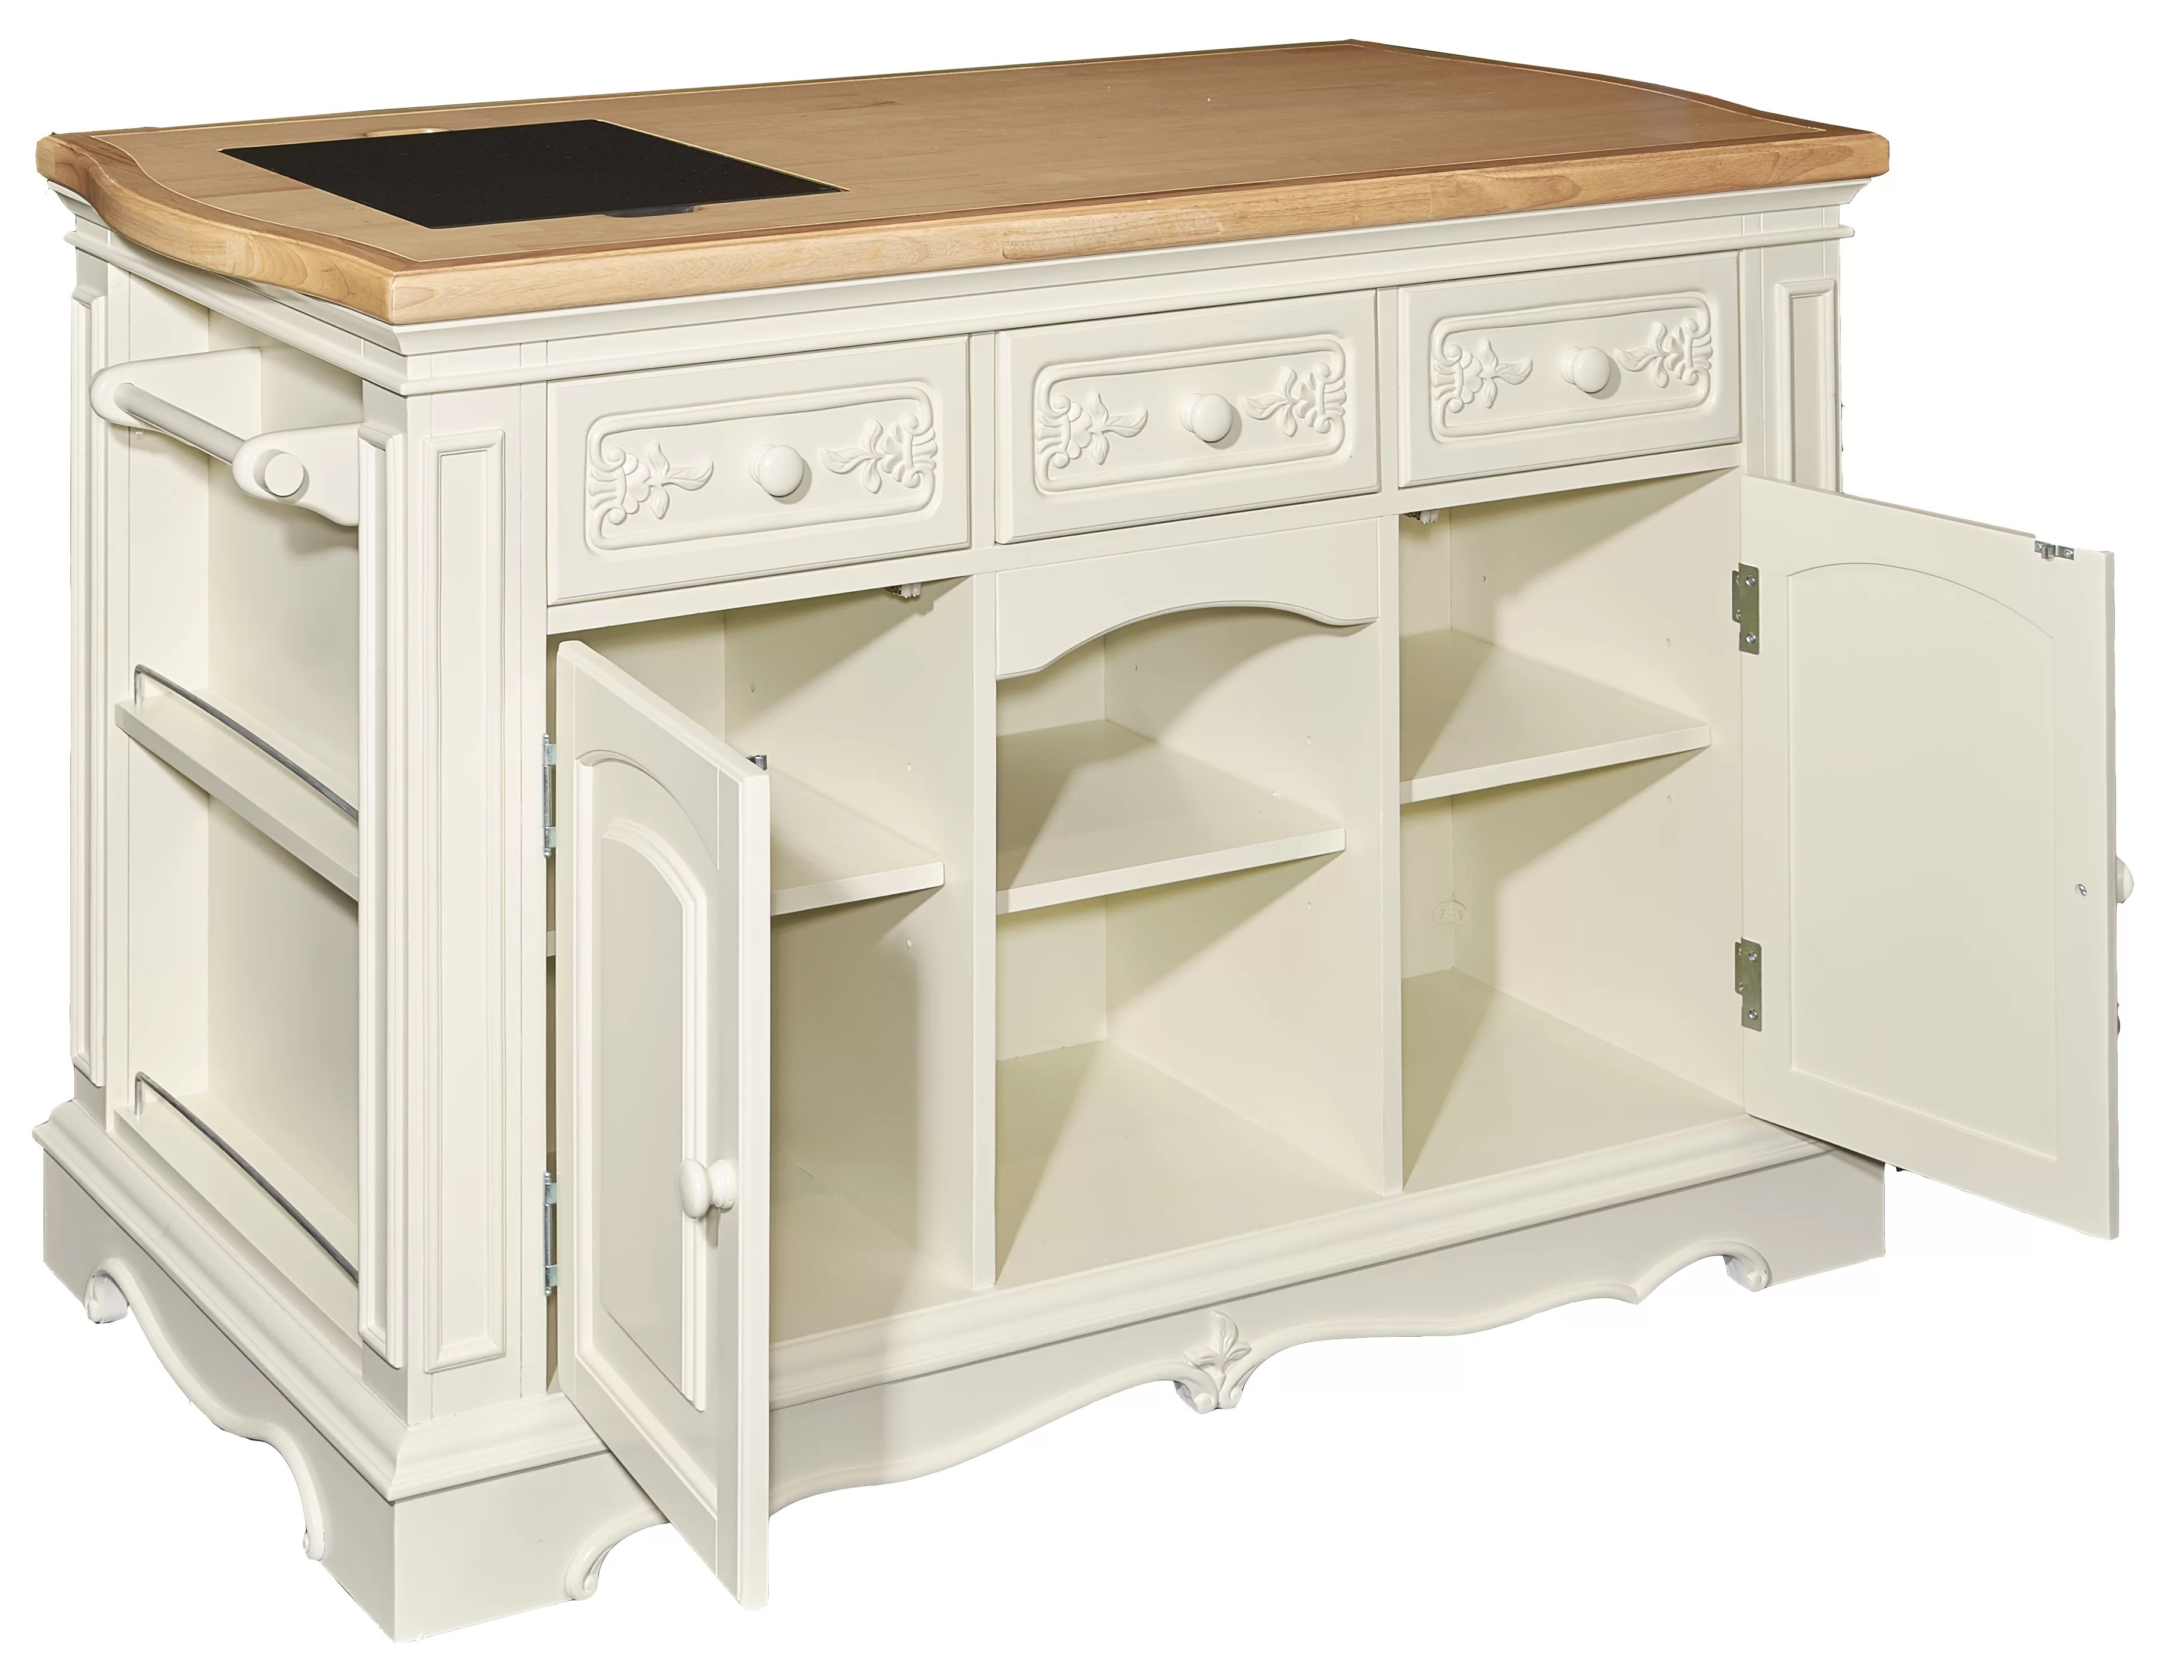 Hofmeister Big Sofa Darby Home Co Hofmeister Kitchen Island With Butcher Top